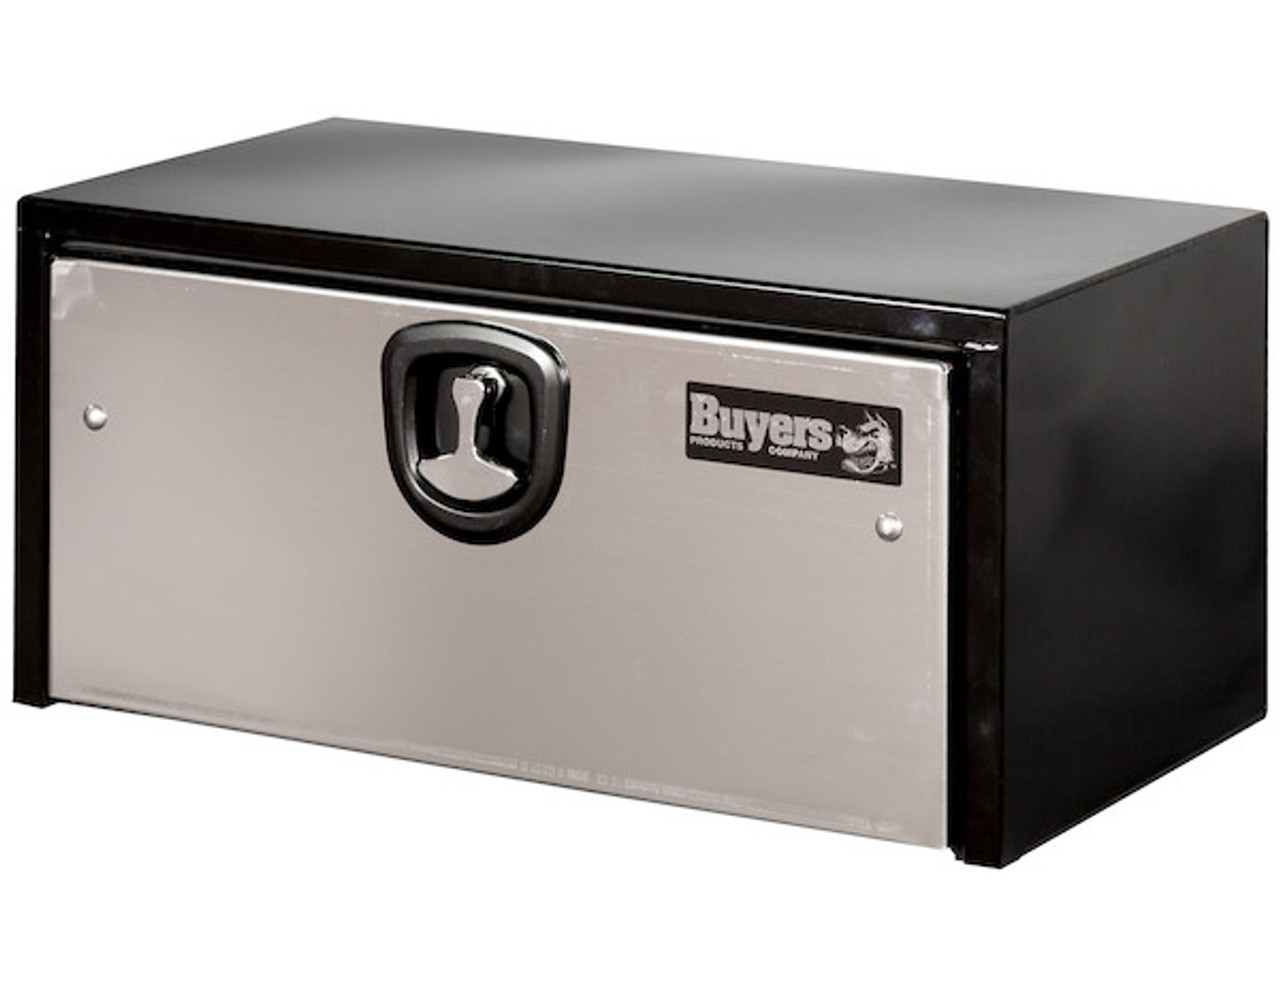 1702705 BUYERS PRODUCTS BLACK STEEL UNDERBODY TRUCK BOX WITH STAINLESS STEEL DOOR TOOLBOX